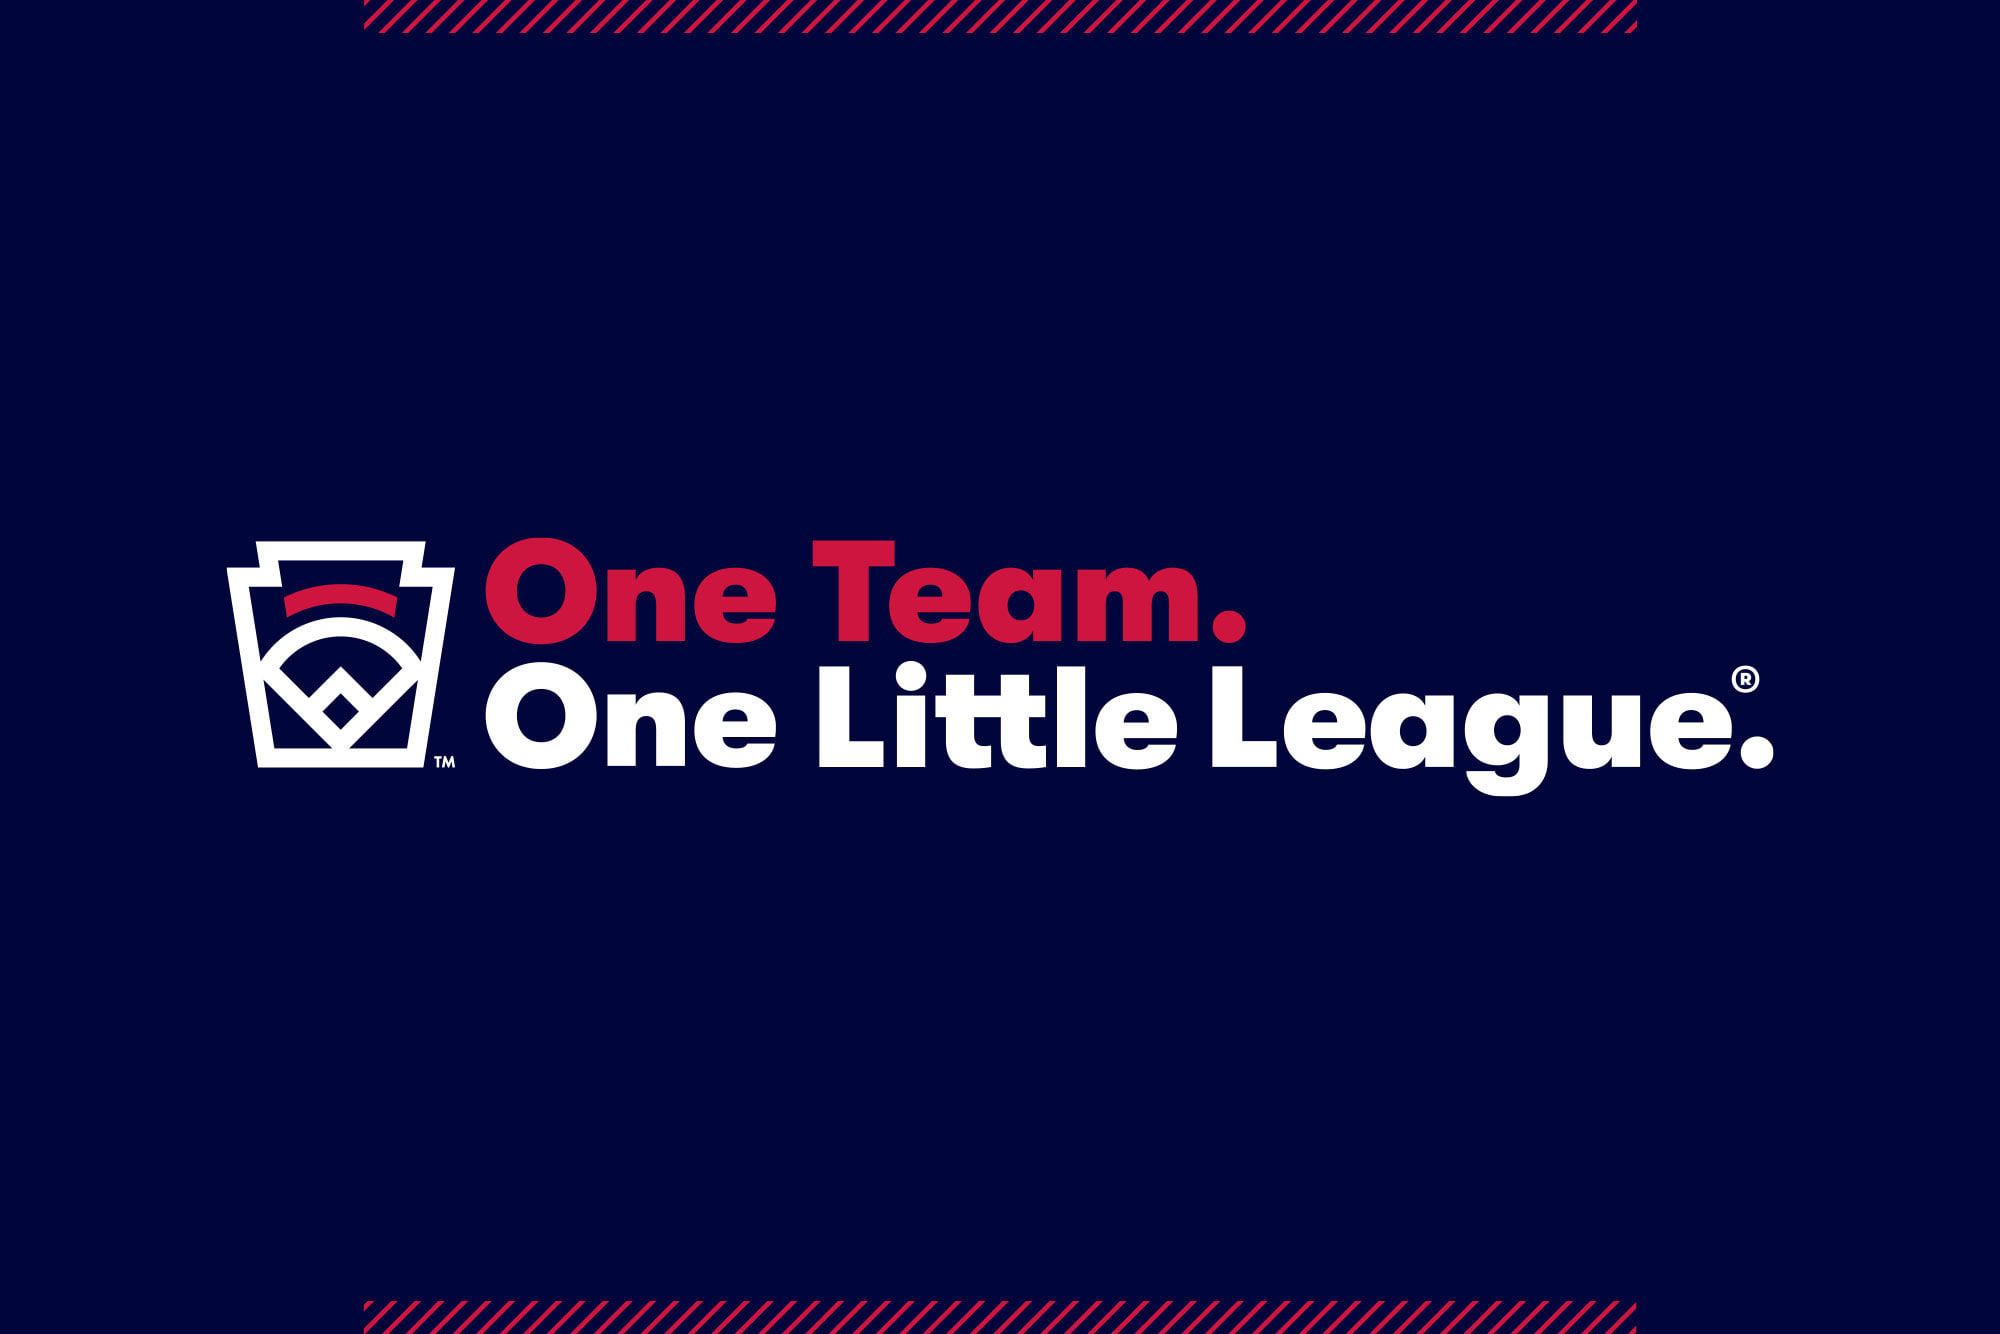 One Team. One Little League.